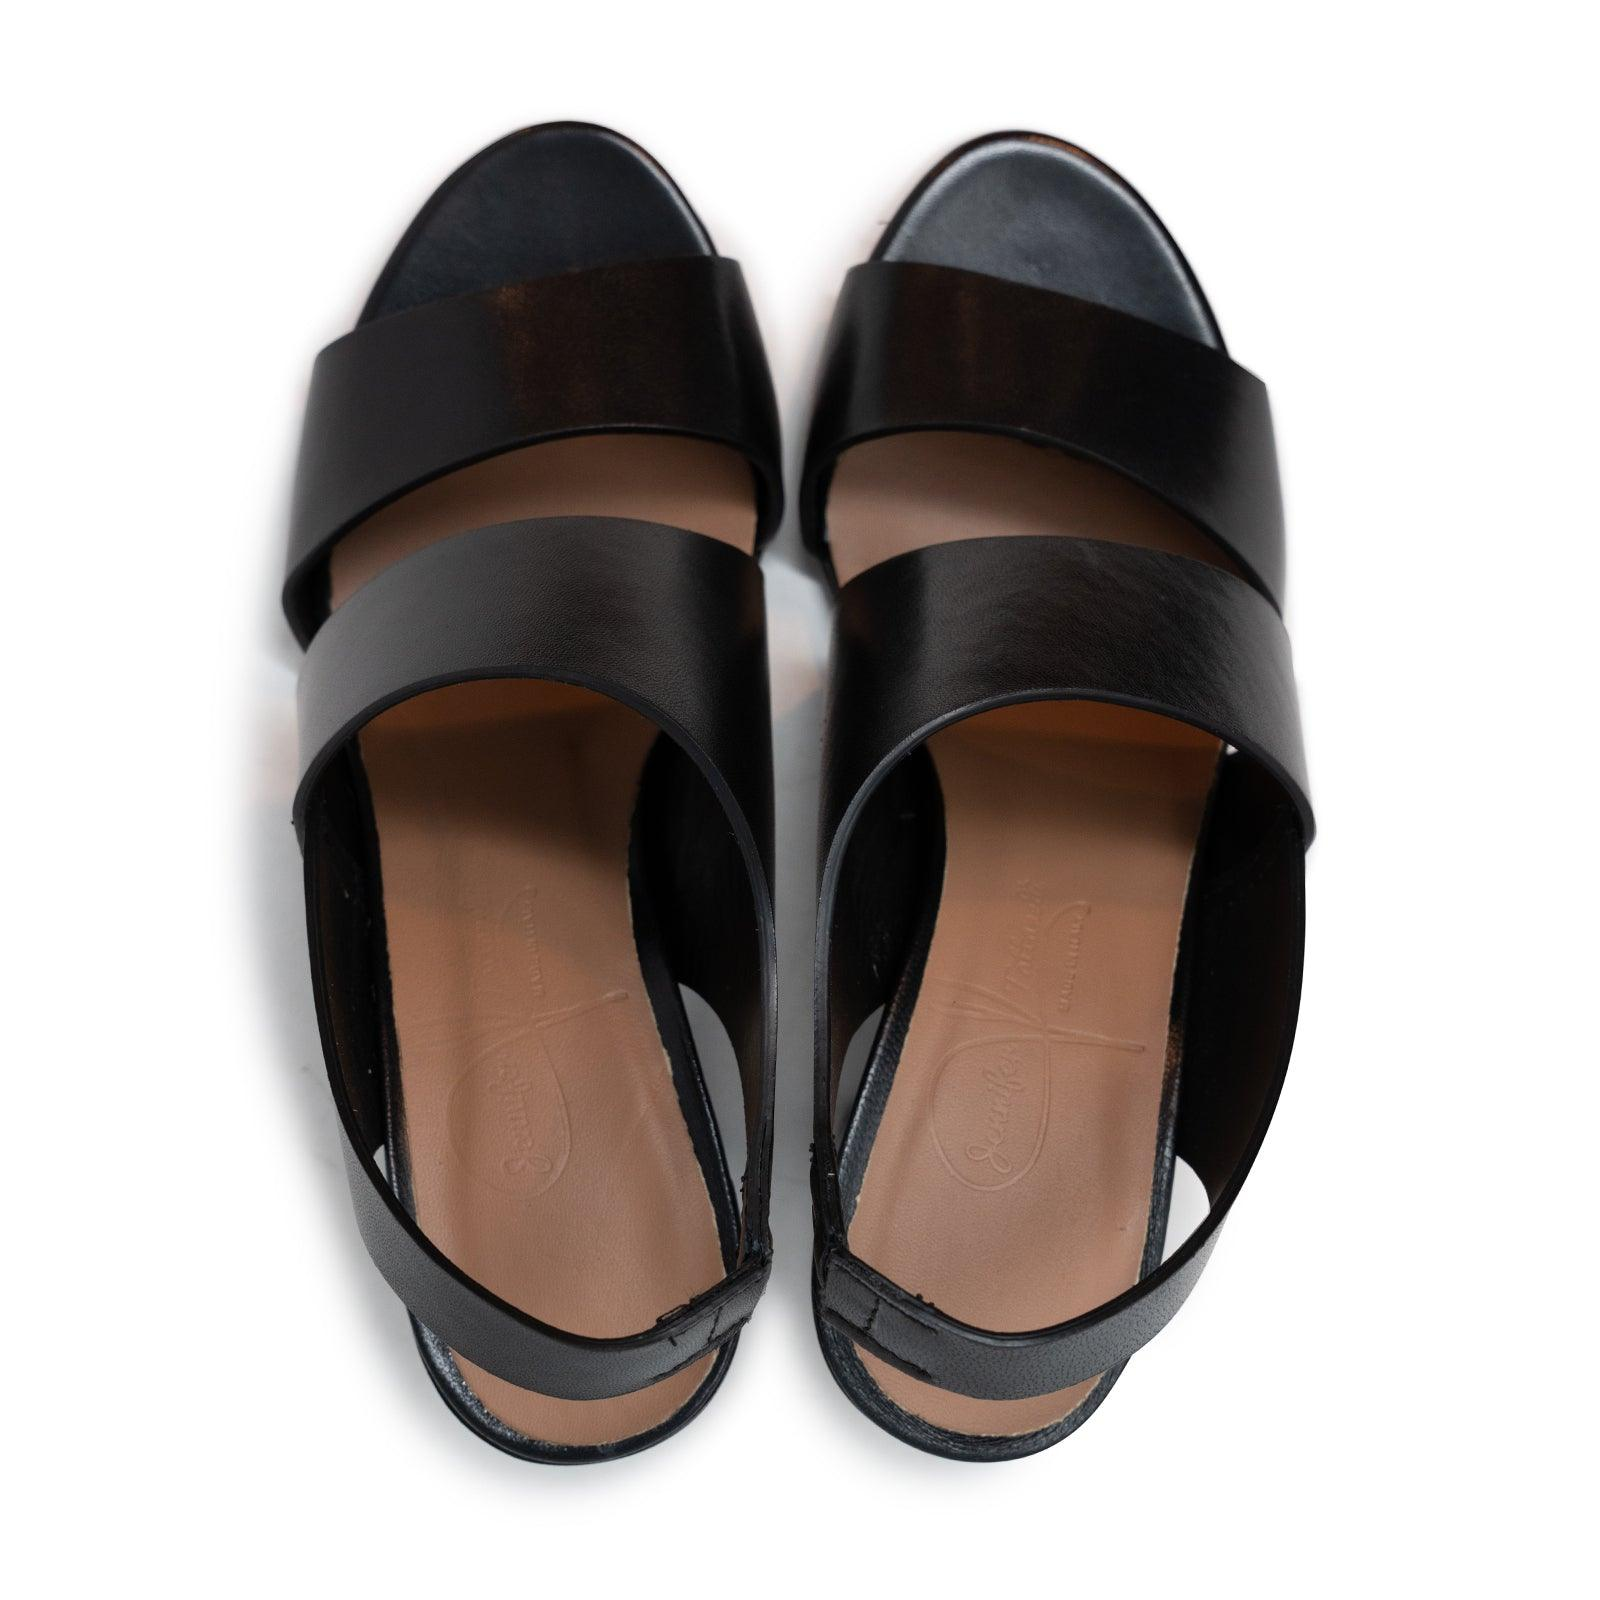 Women's 60' Leather Stripes Slip on Sandals in Black